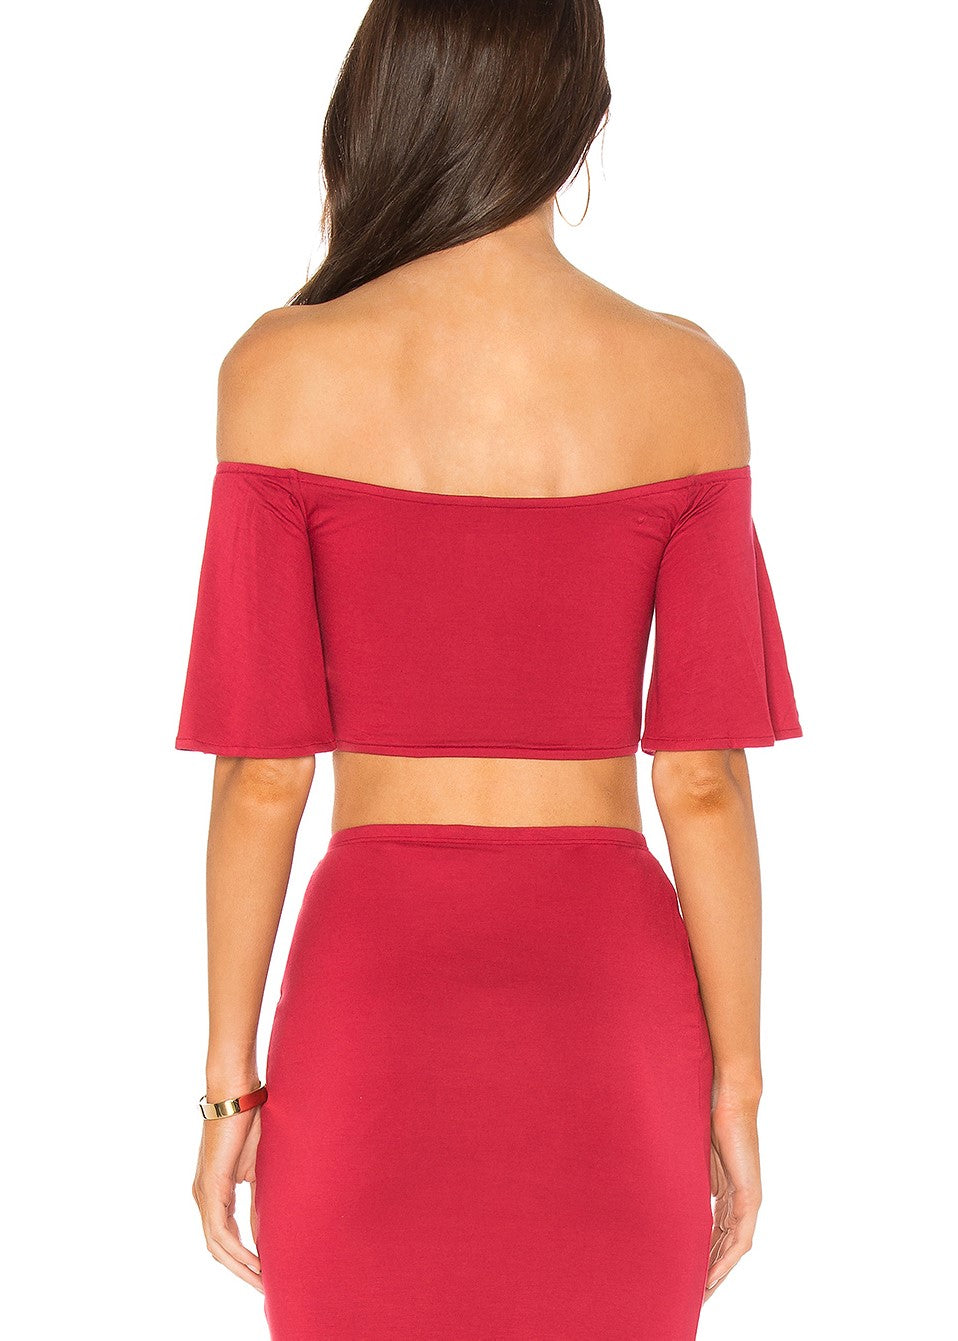 Privacy Please Hills Crop and Canyon Skirt Set - Red XS